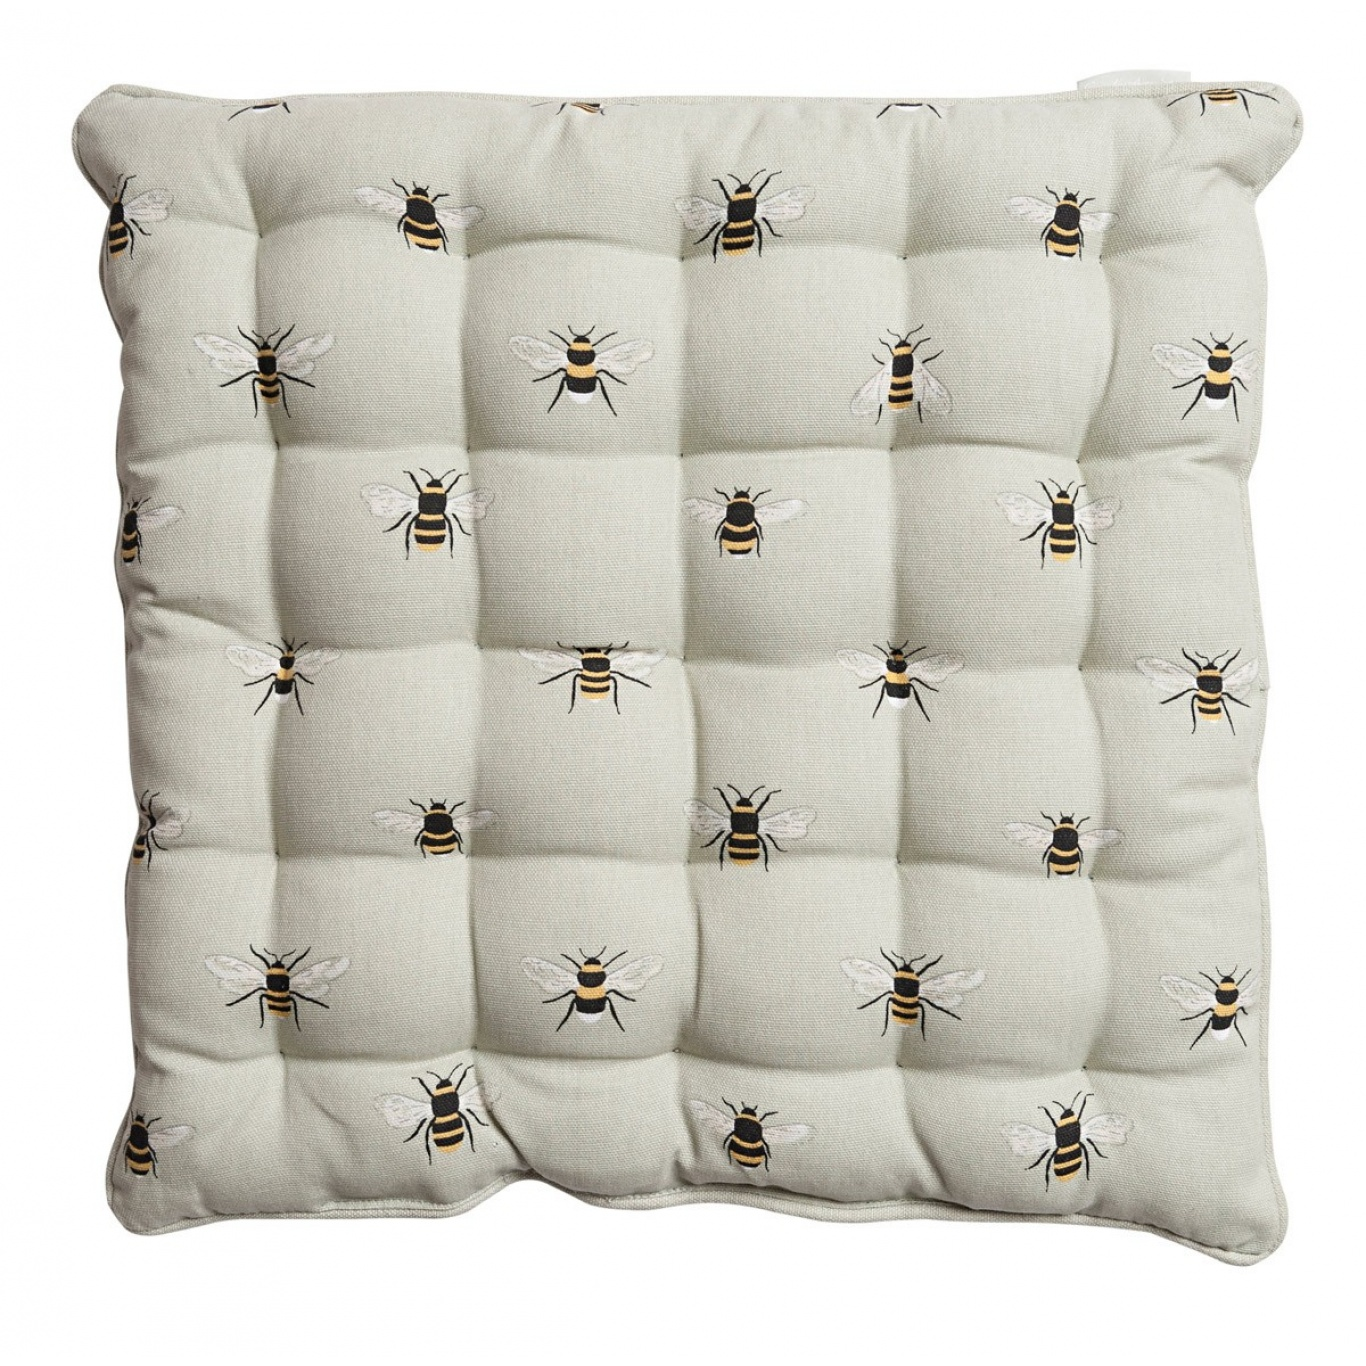 Image of Sophie Allport Bees Seat Pad